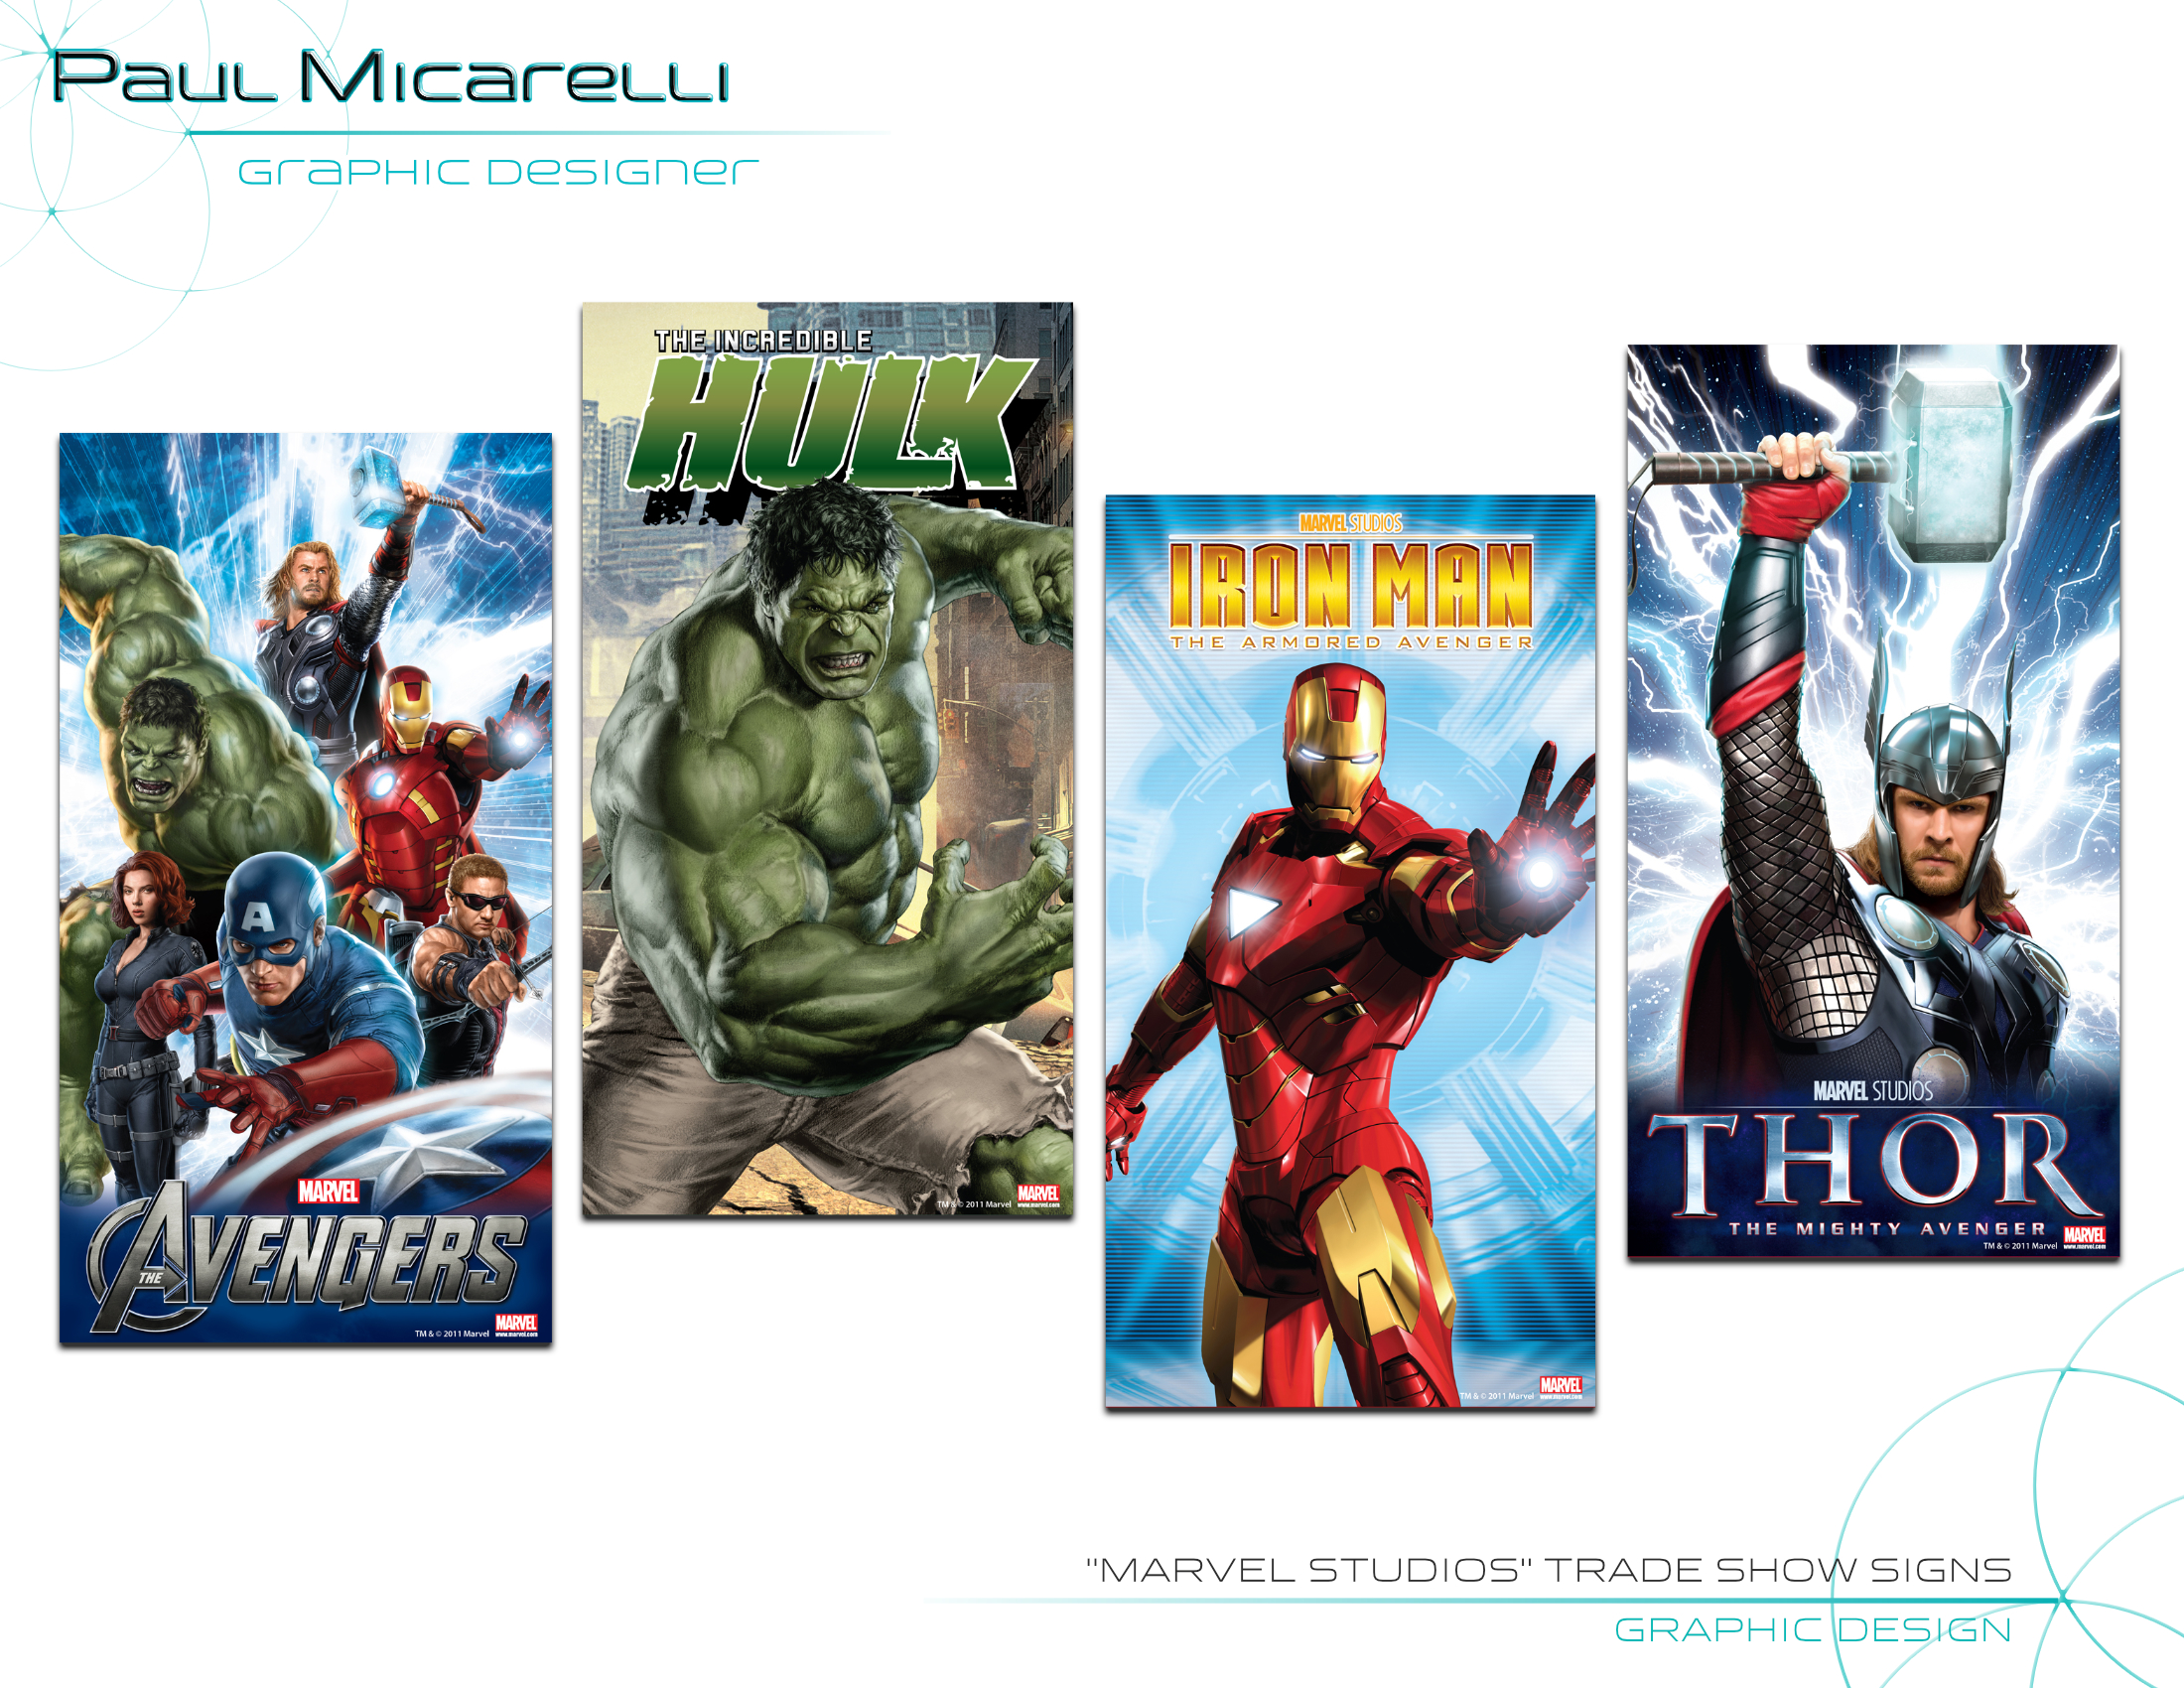 Paul-Micarelli-Marvel Trade Show Signs